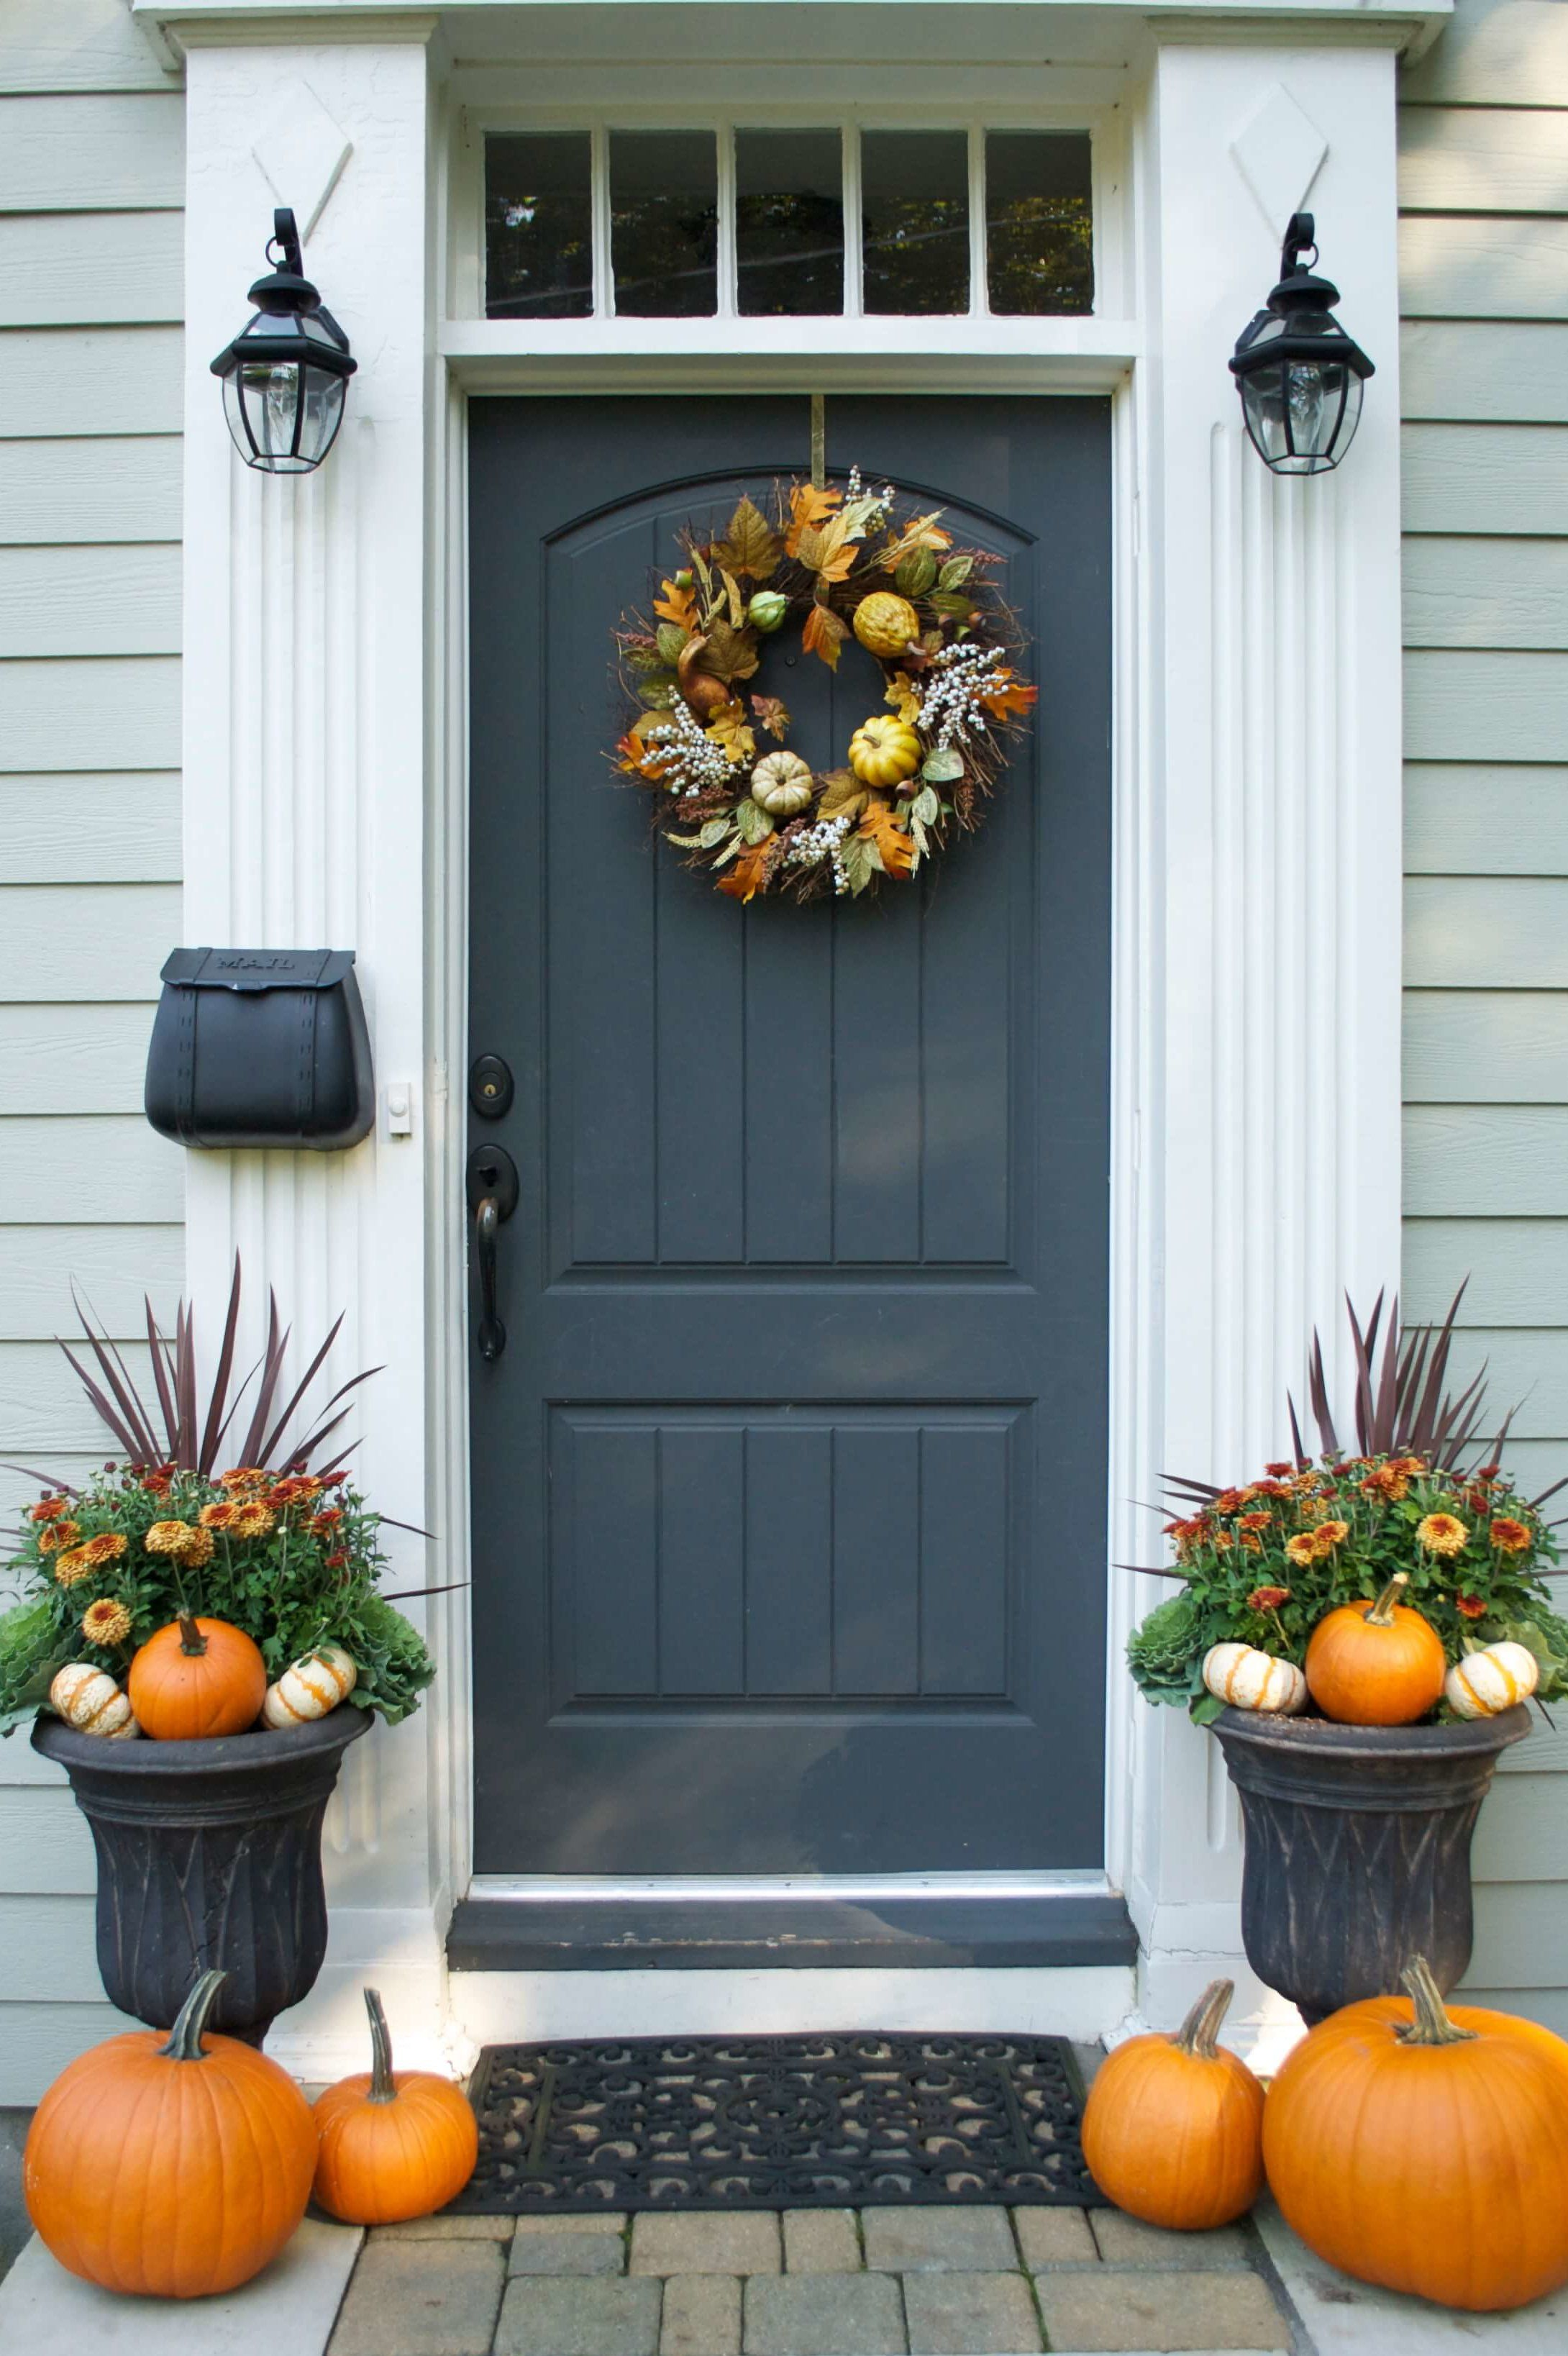 4 Chic Fall Decor Ideas Decorating, Doors and Porch - Halloween Door Decoration Ideas